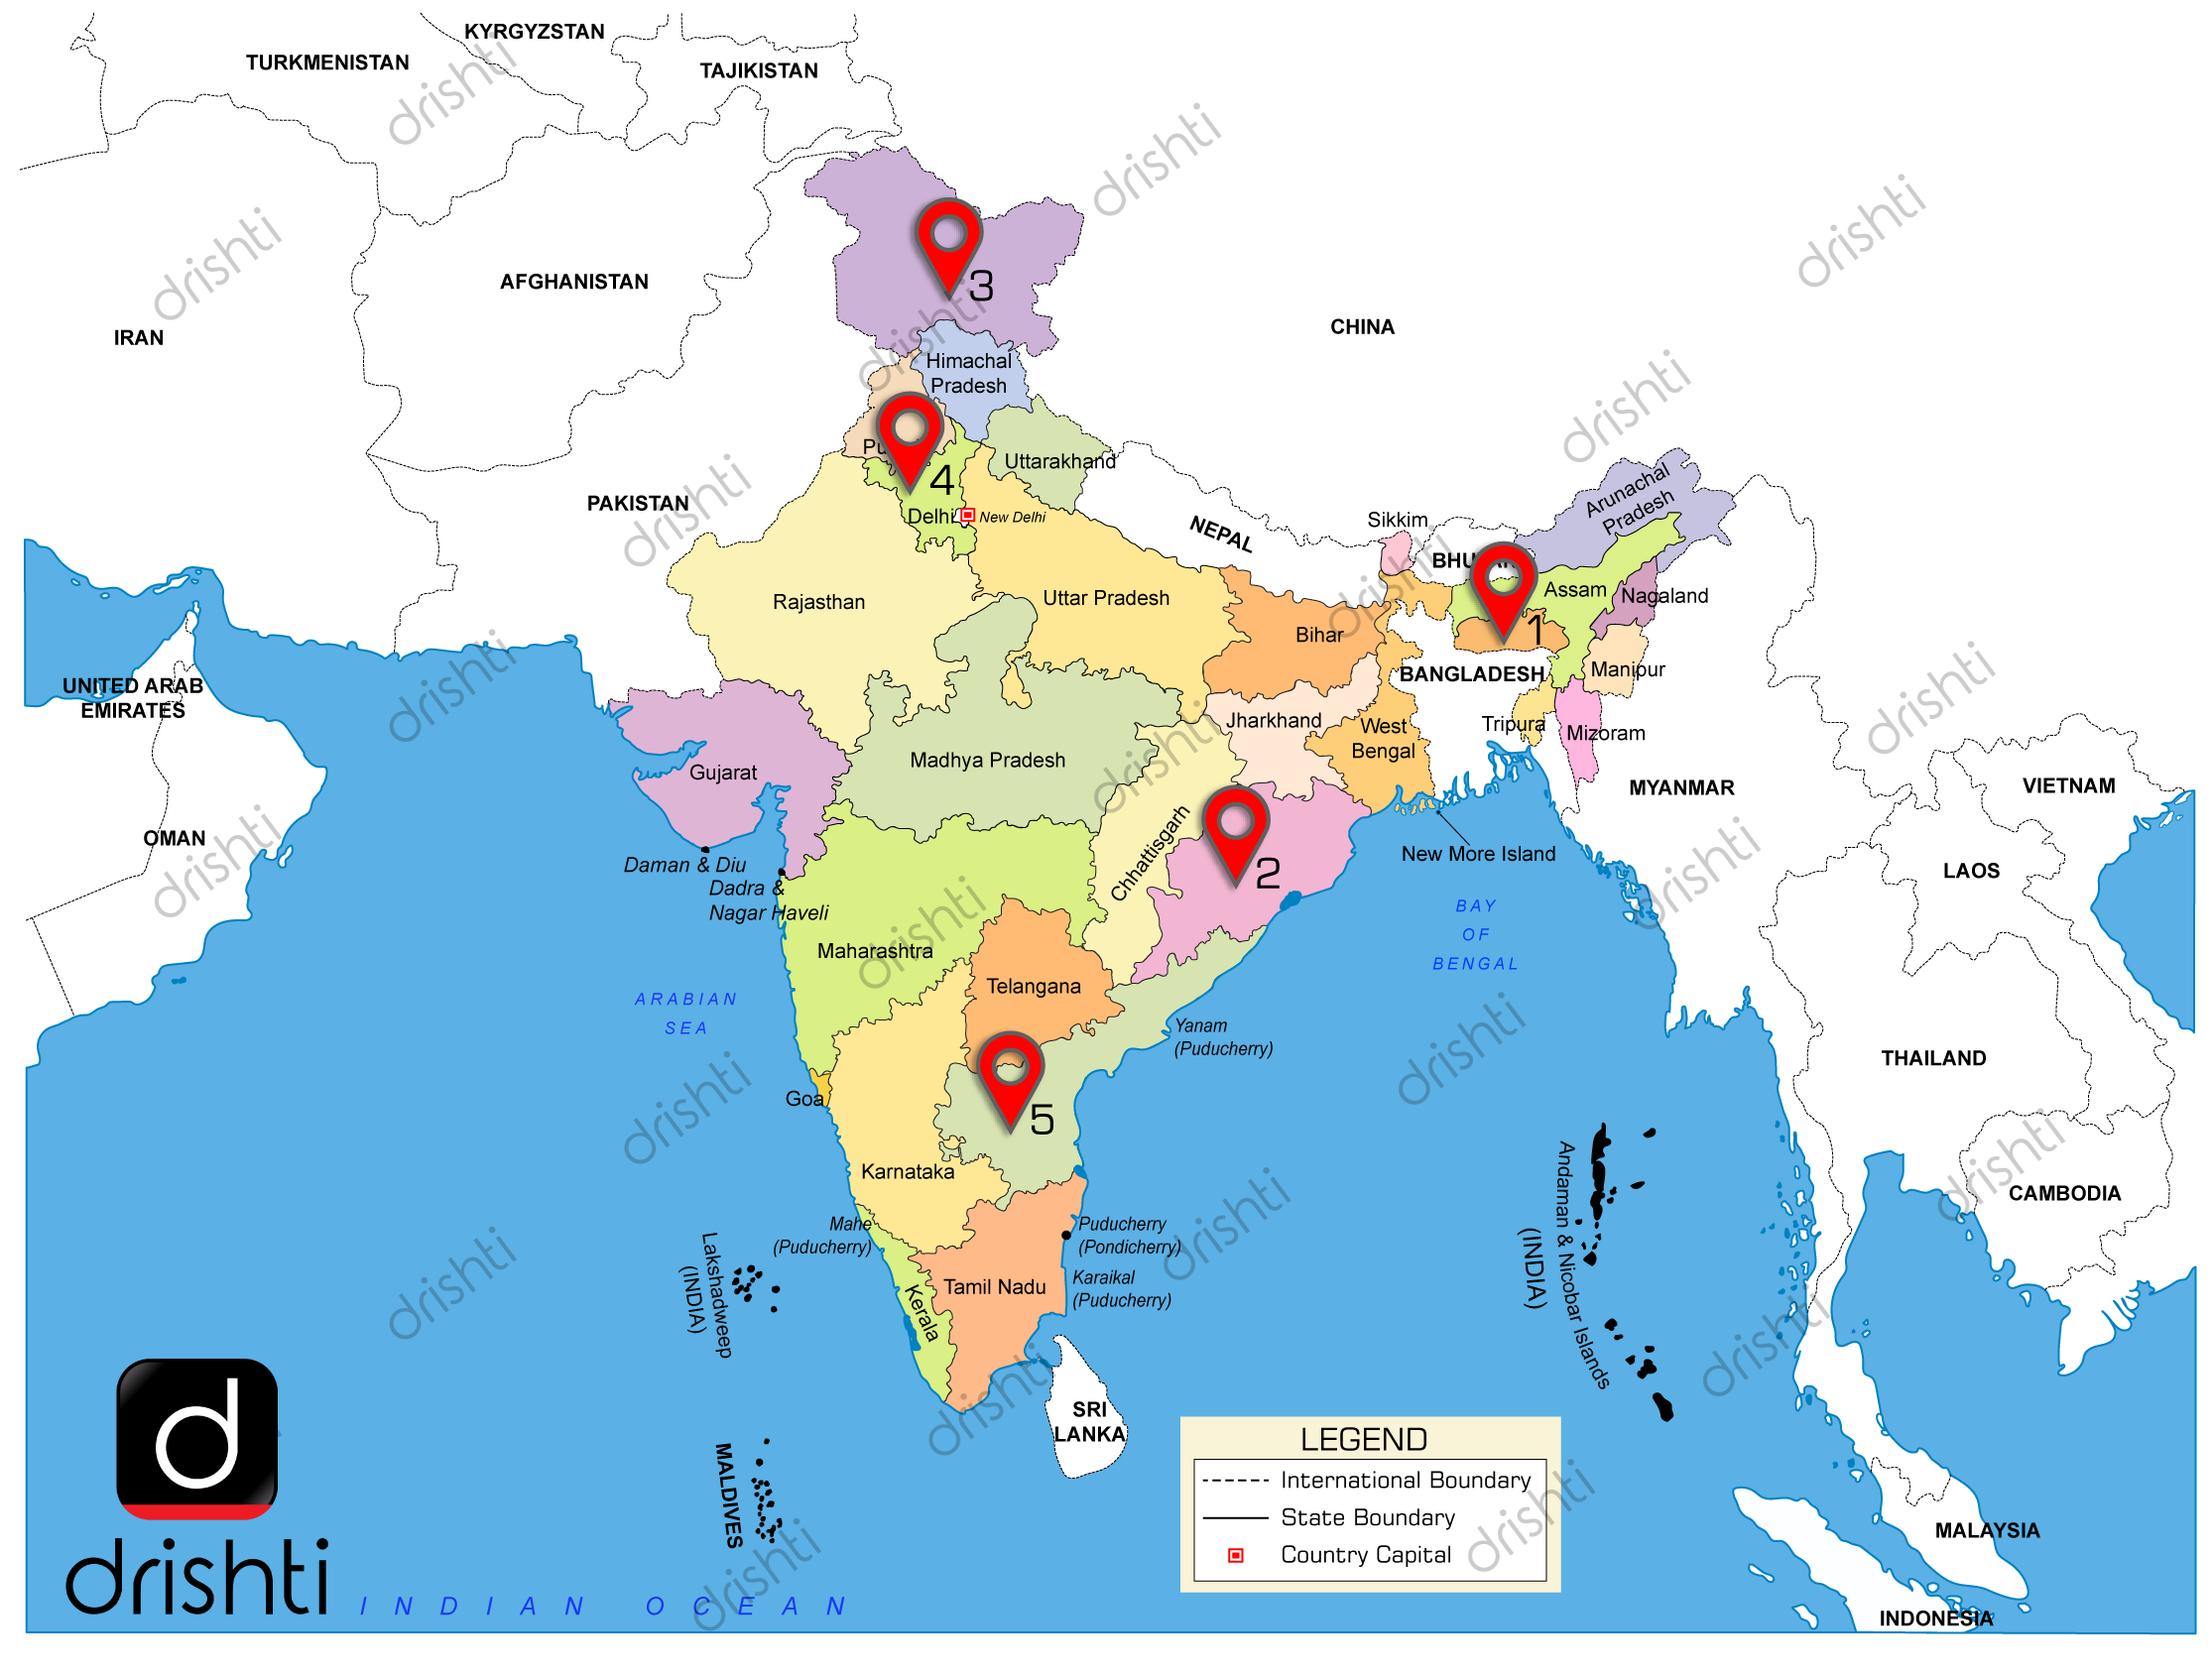 India Map : January (I) 2019 : Learning Through Maps